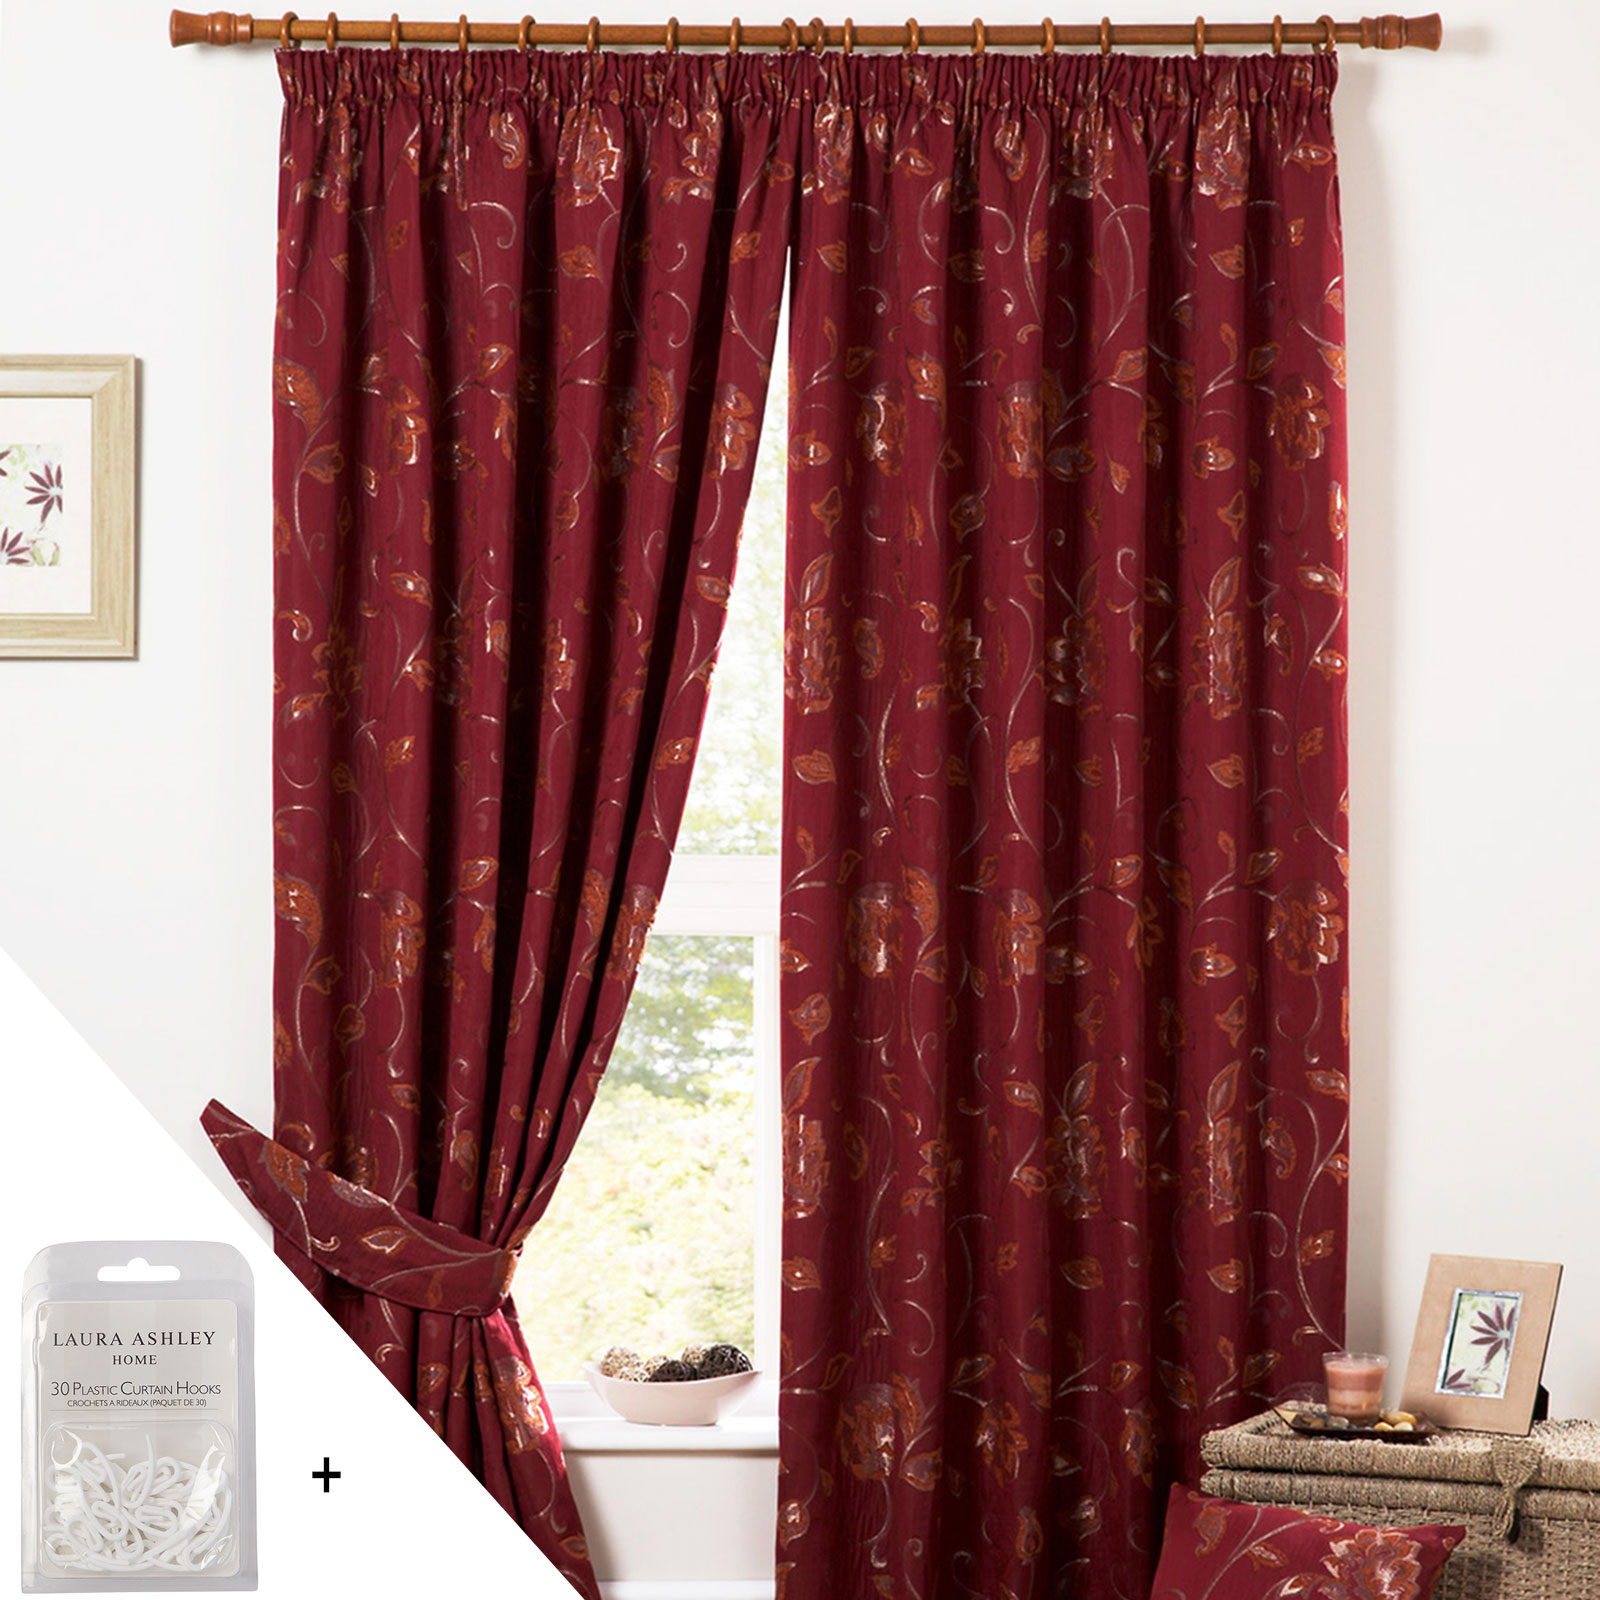 luxury heavy weight jacquard curtains pencil pleat lined. Black Bedroom Furniture Sets. Home Design Ideas